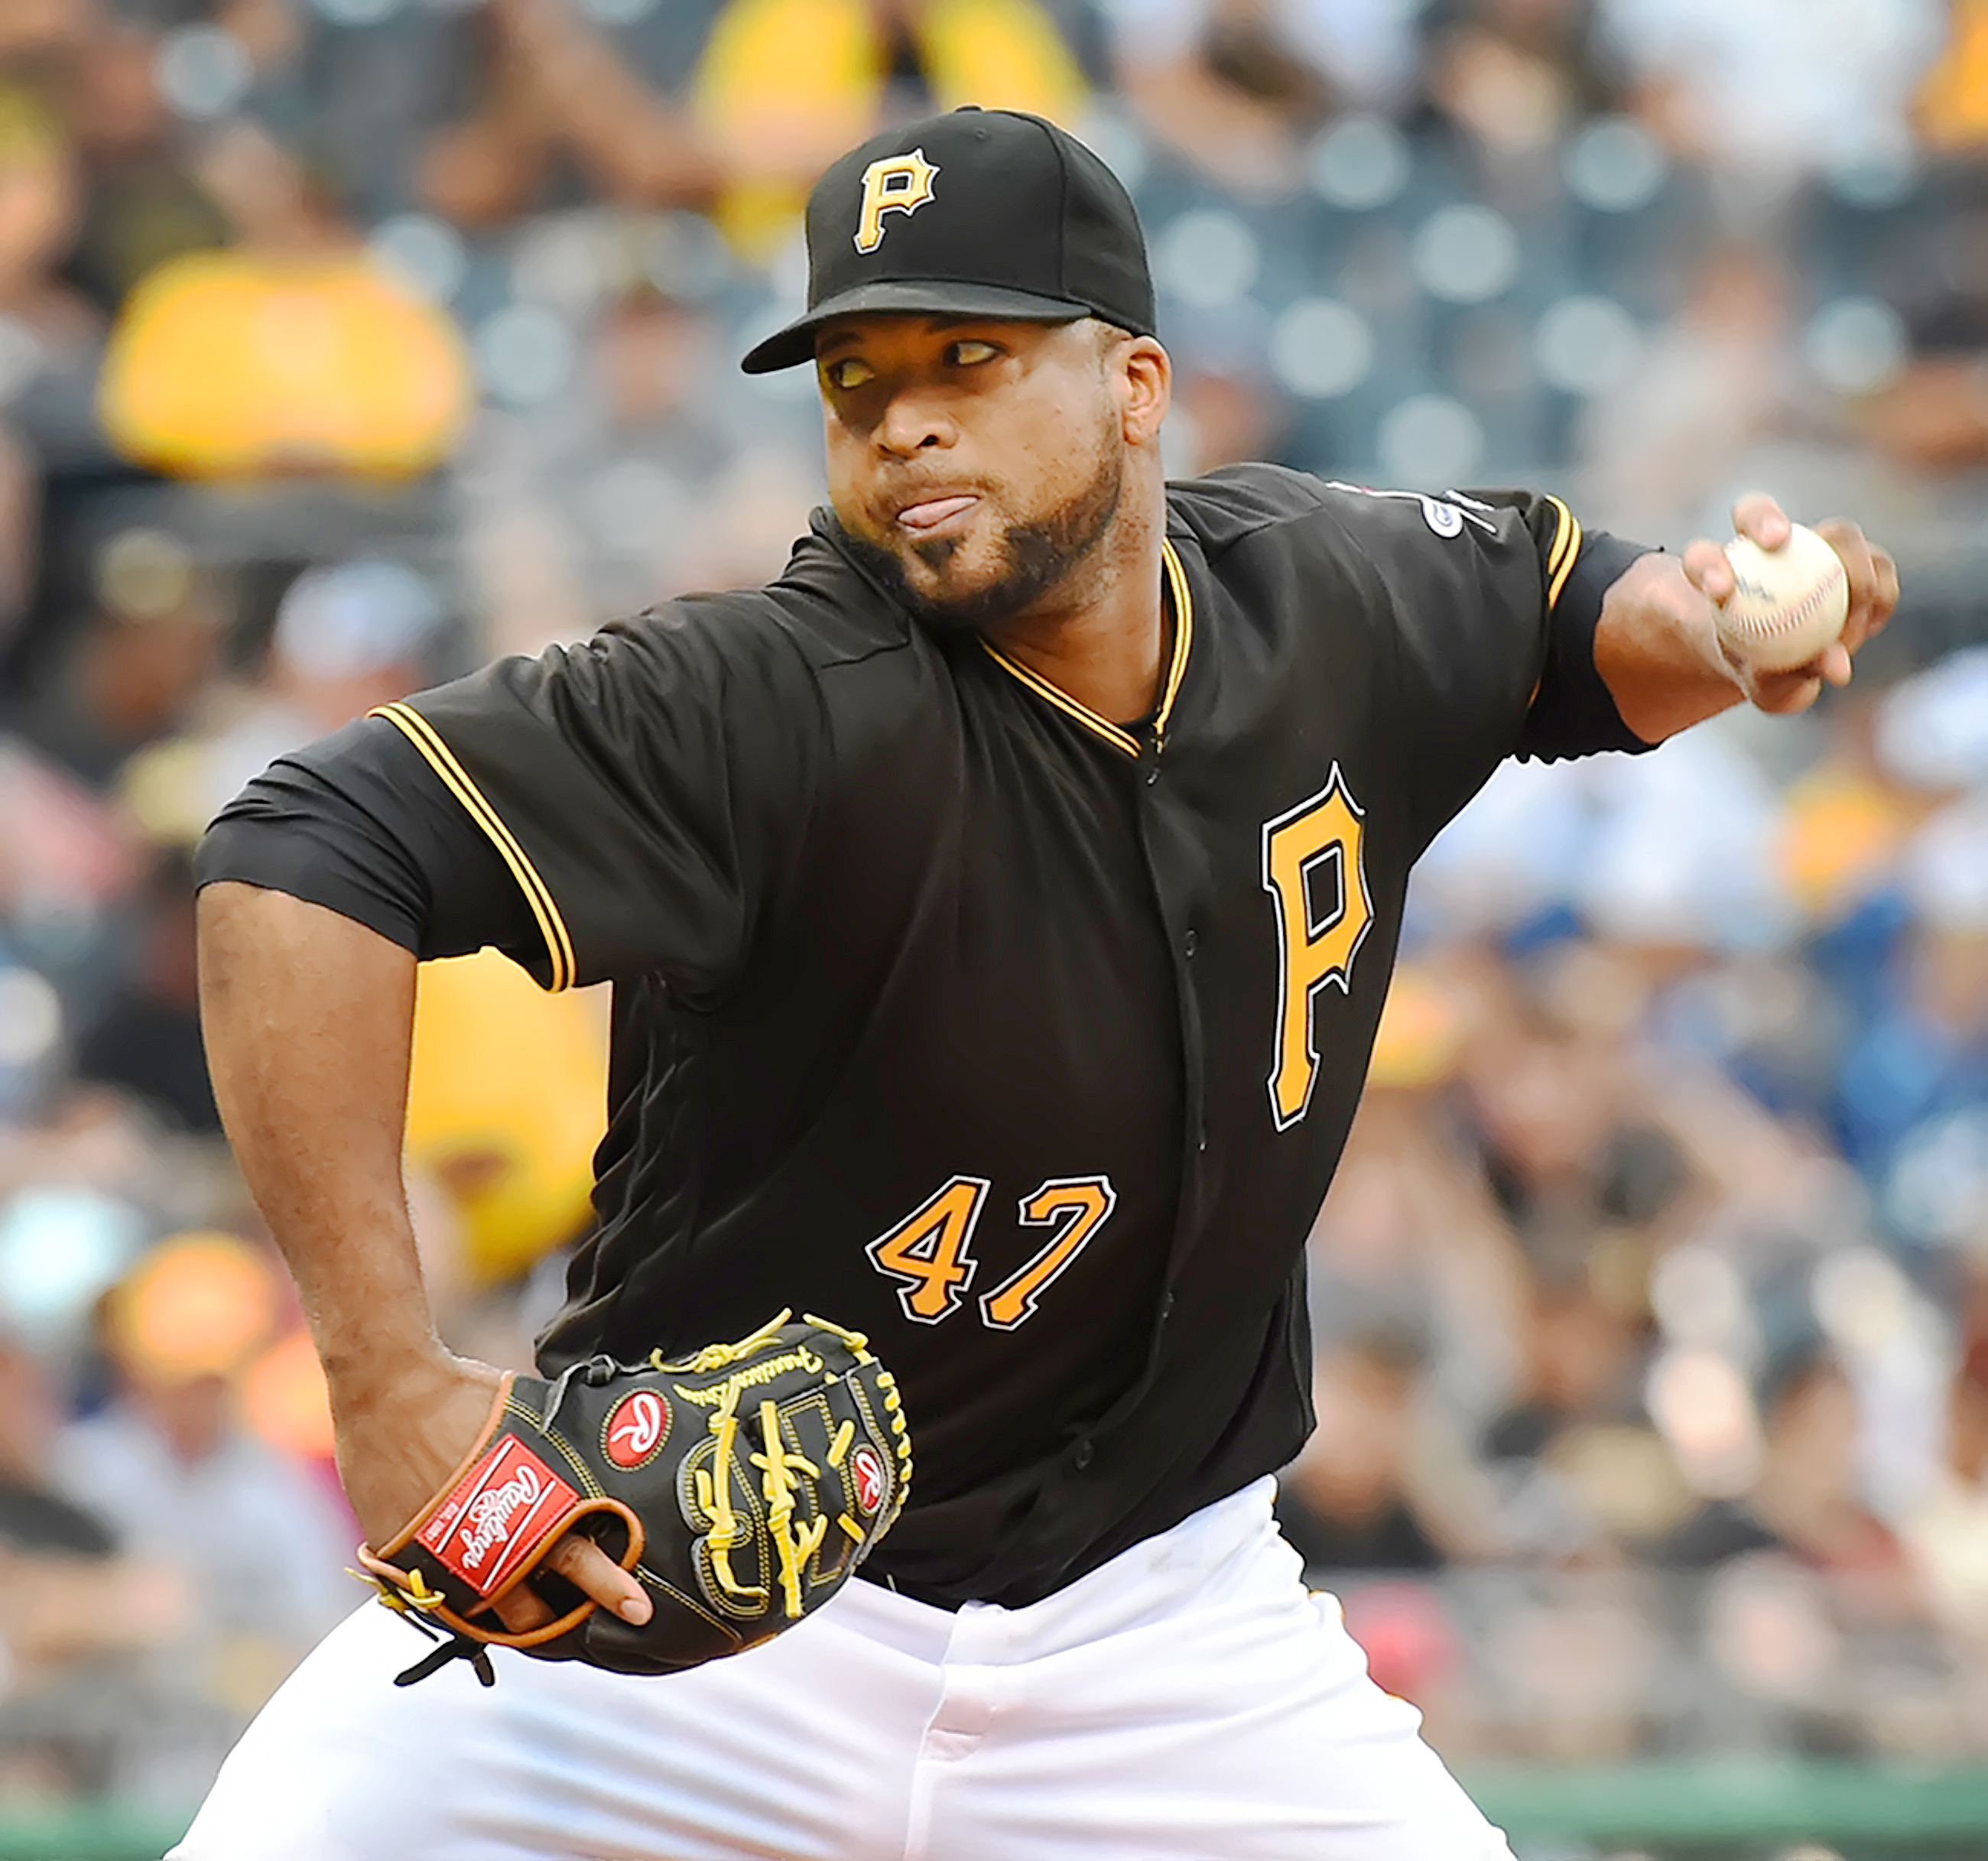 Pirates lose series finale to Dodgers, 5-4